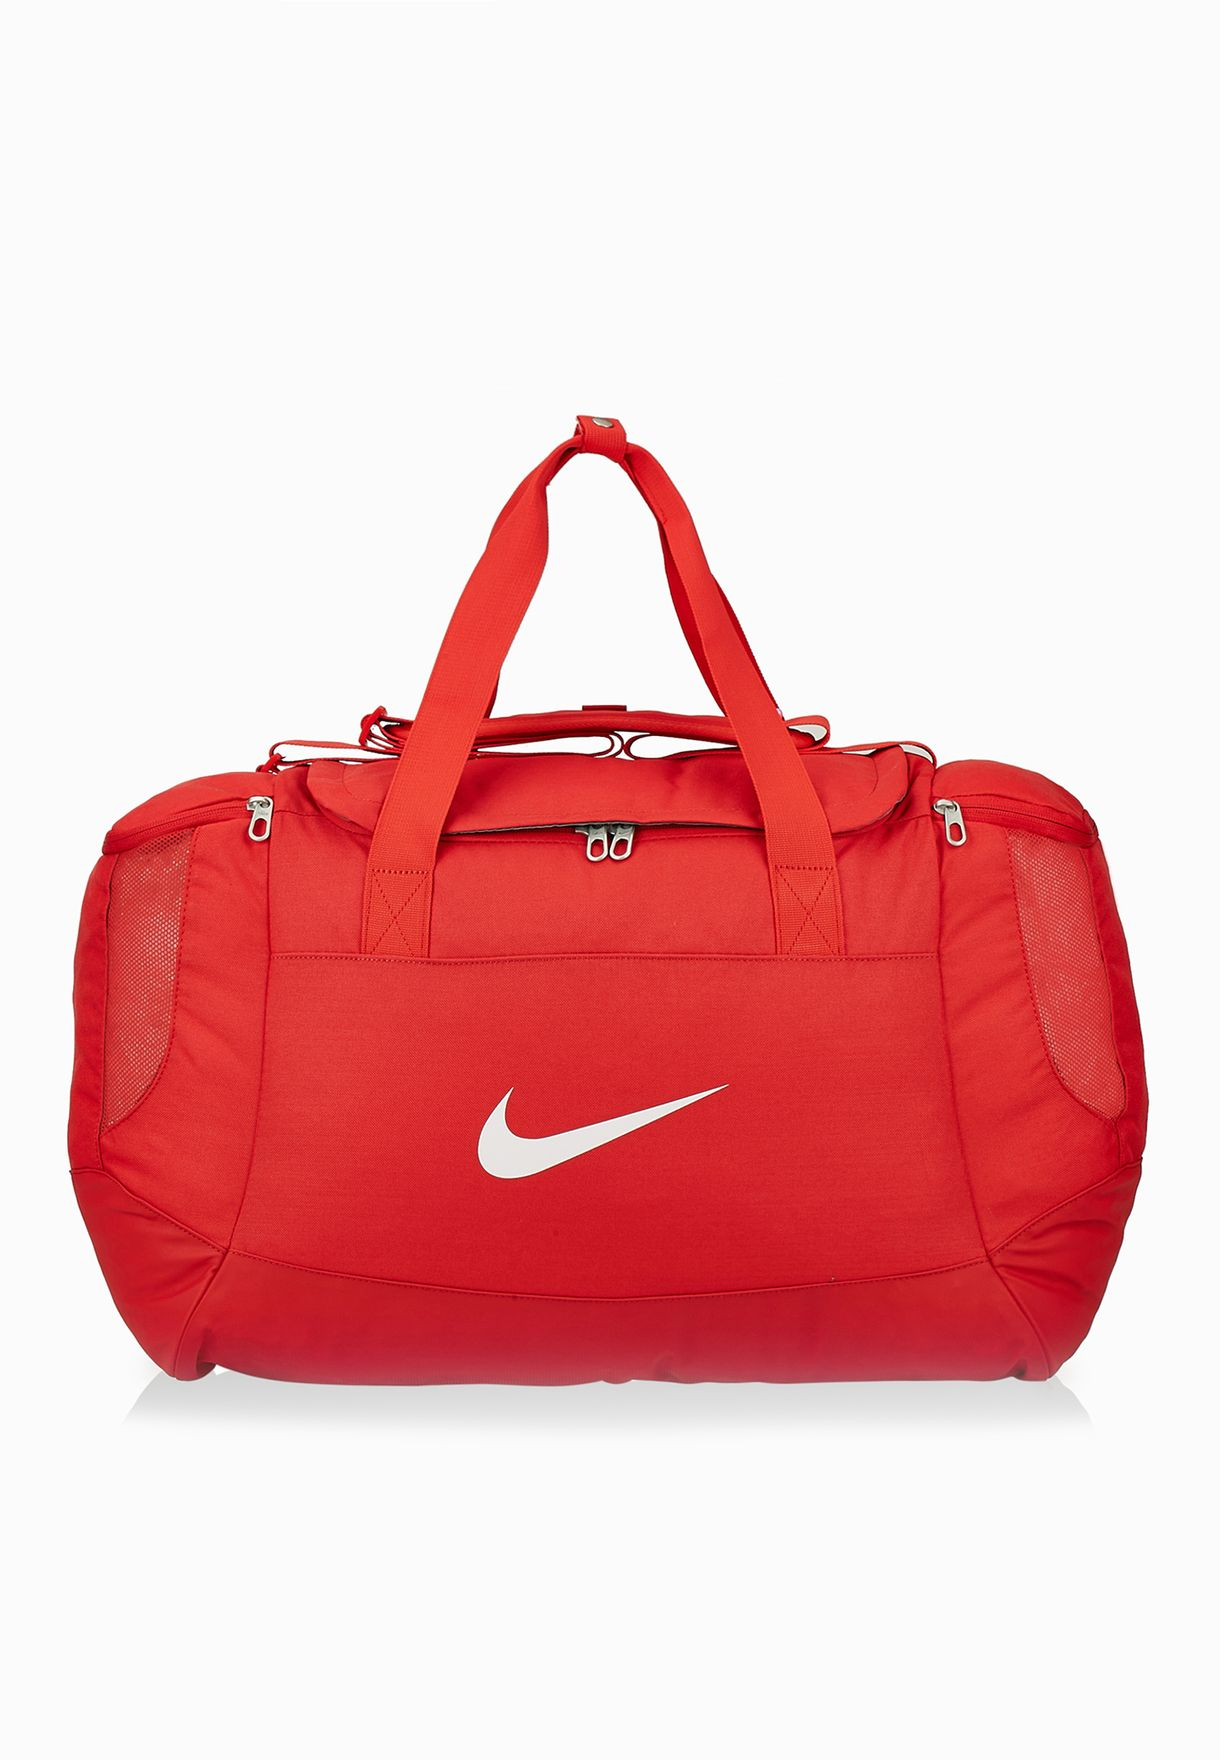 1b6dffb6ad426 Shop Nike red Medium Club Team Swoosh Duffel Bag BA5193-657 for Men ...